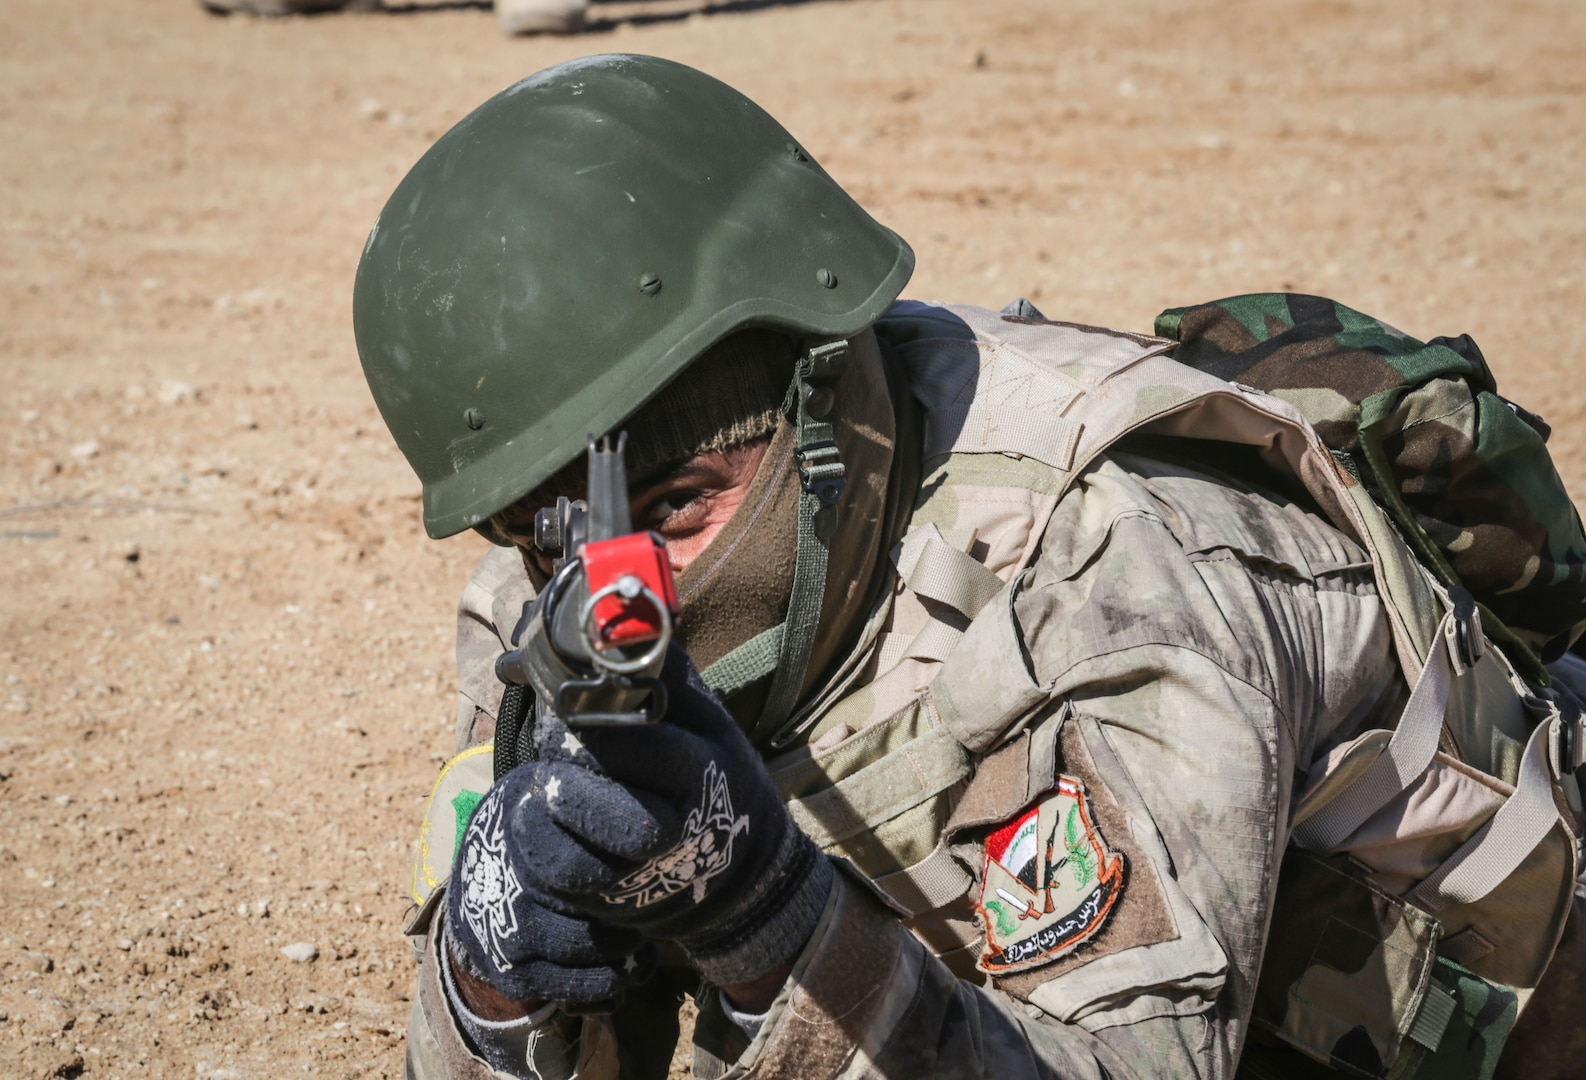 An Iraqi security forces soldier aims his M16 rifle at a target during react to contact training at Al Asad Air Base, Iraq, Feb. 1, 2017. Training at building partner capacity sites is an integral part of Combined Joint Task Force – Operation Inherent Resolve's effort to train ISF personnel.  CJTF-OIR is the global Coalition to defeat ISIL in Iraq and Syria.  (U.S. Army photo by Sgt. Lisa Soy)